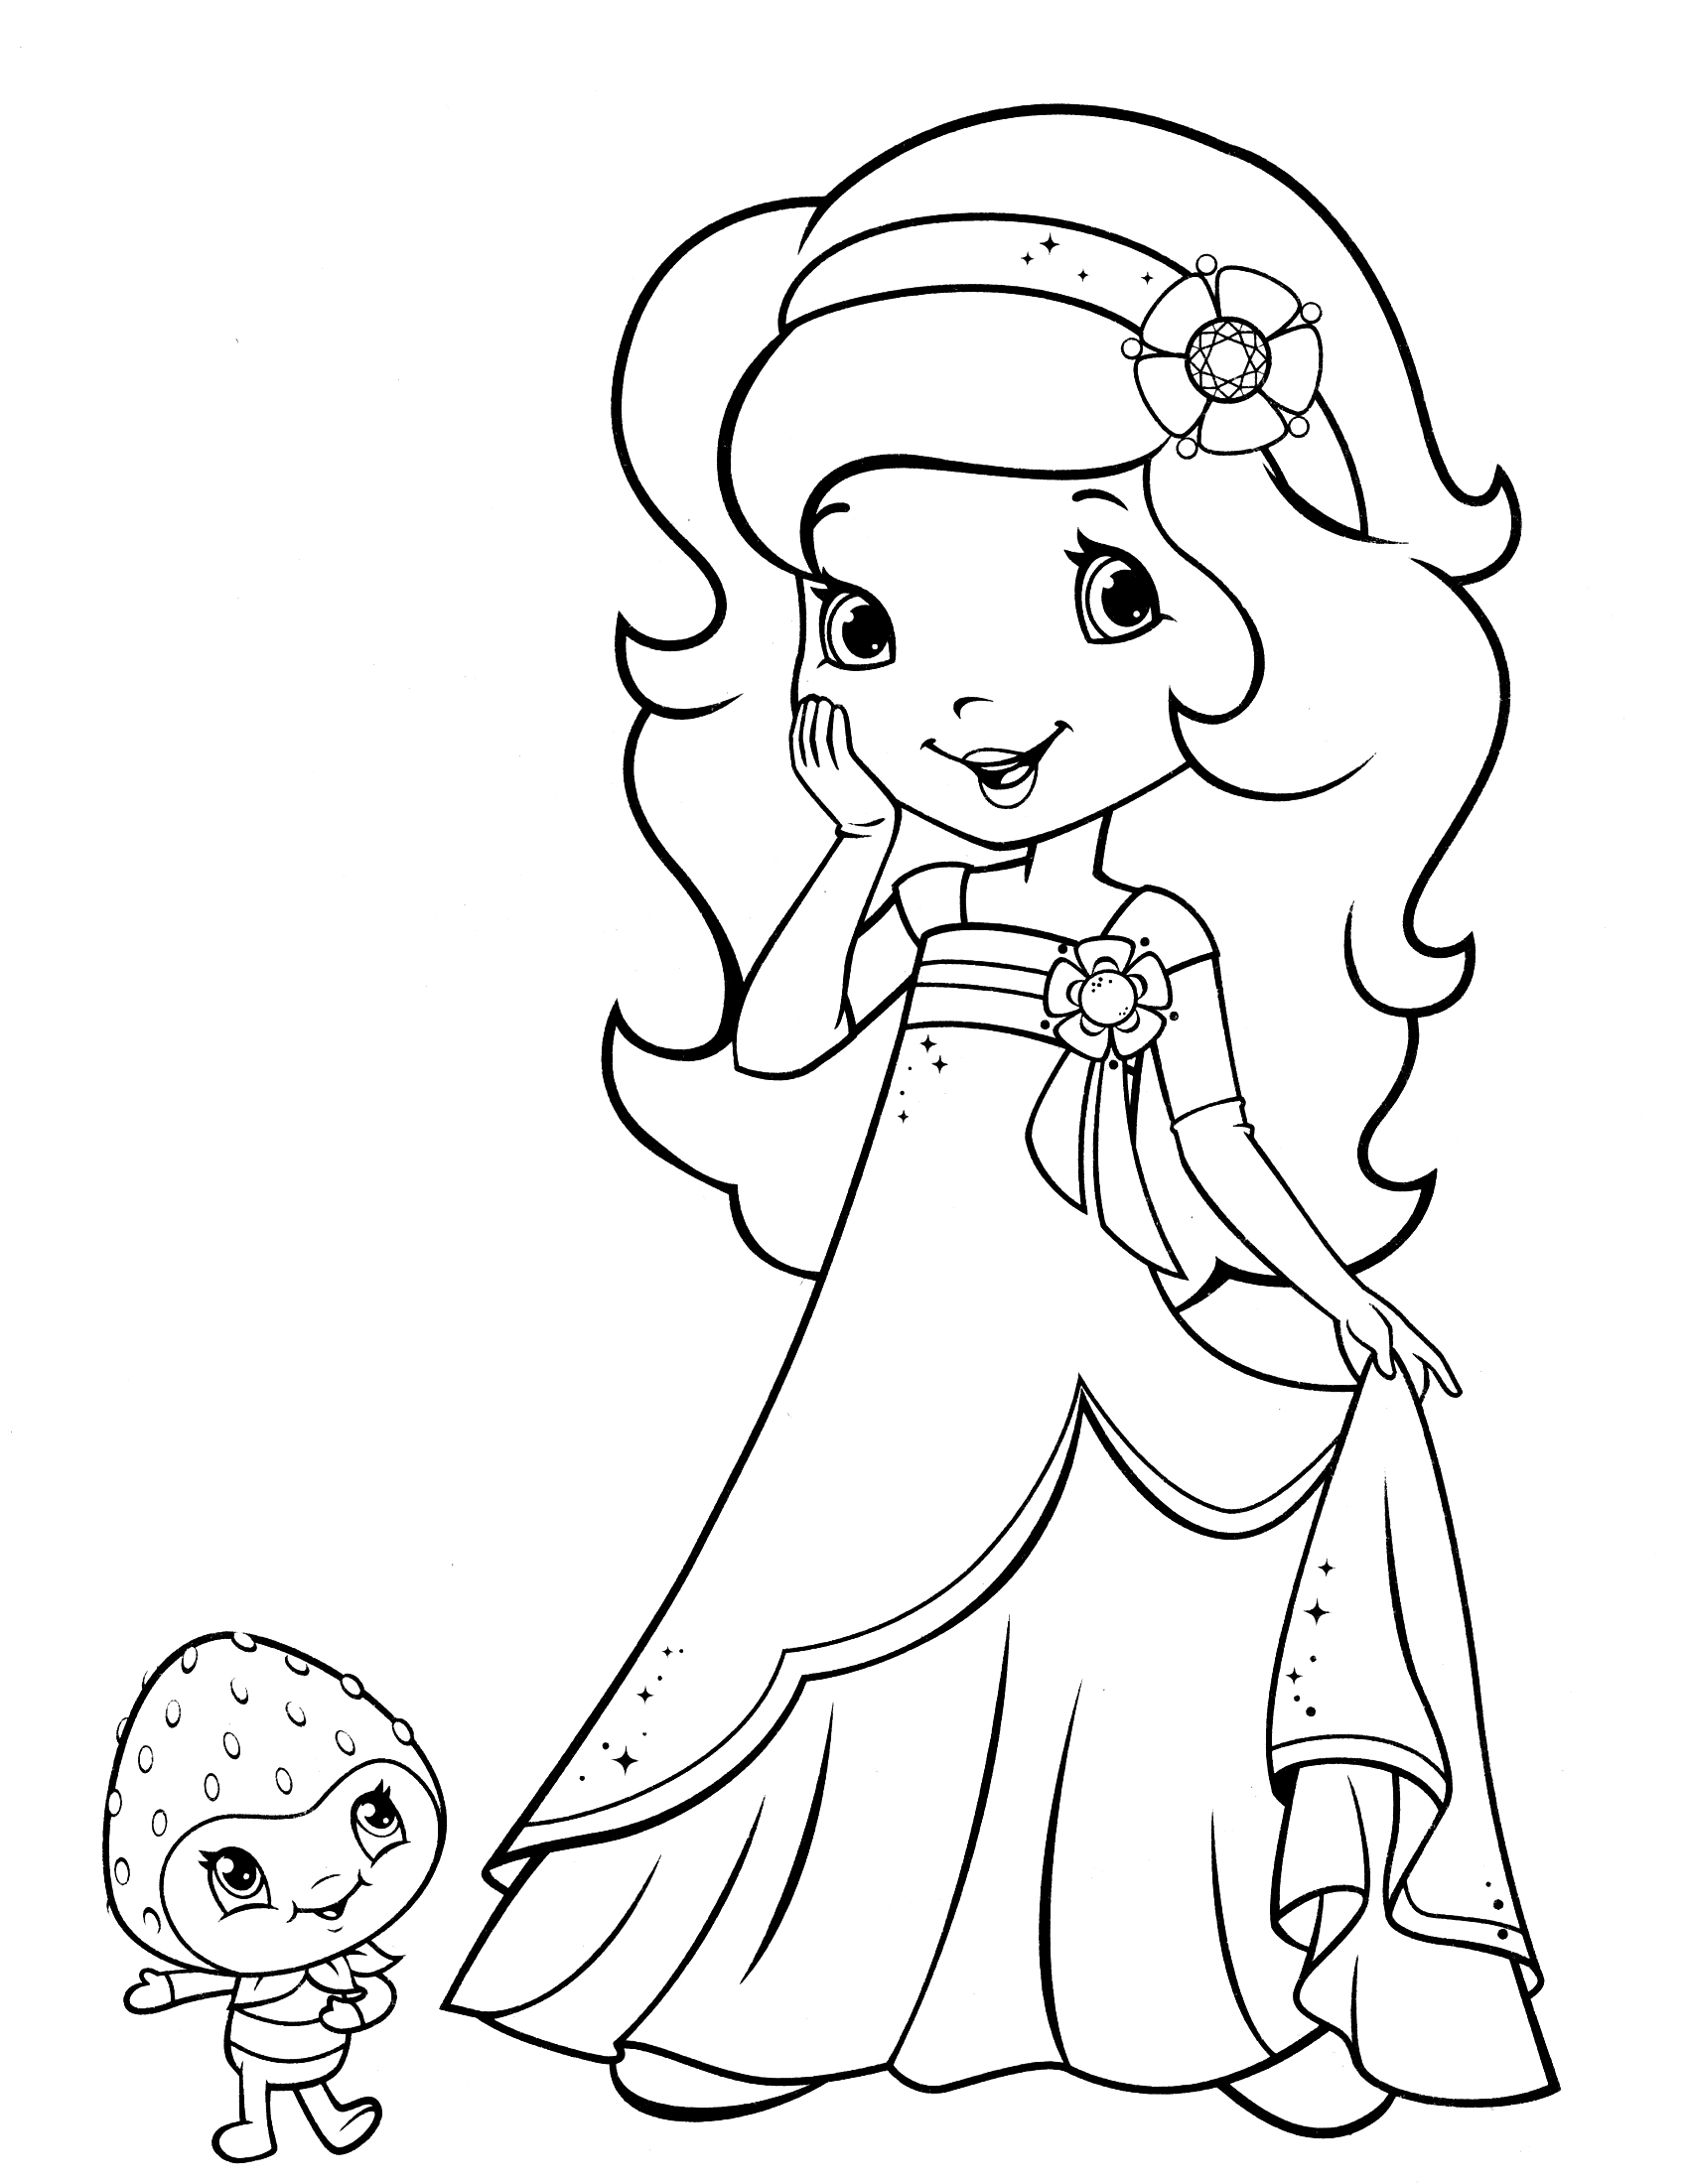 1700x2200 Strawberry Shortcake Coloring Pages, Strawberry Shortcake